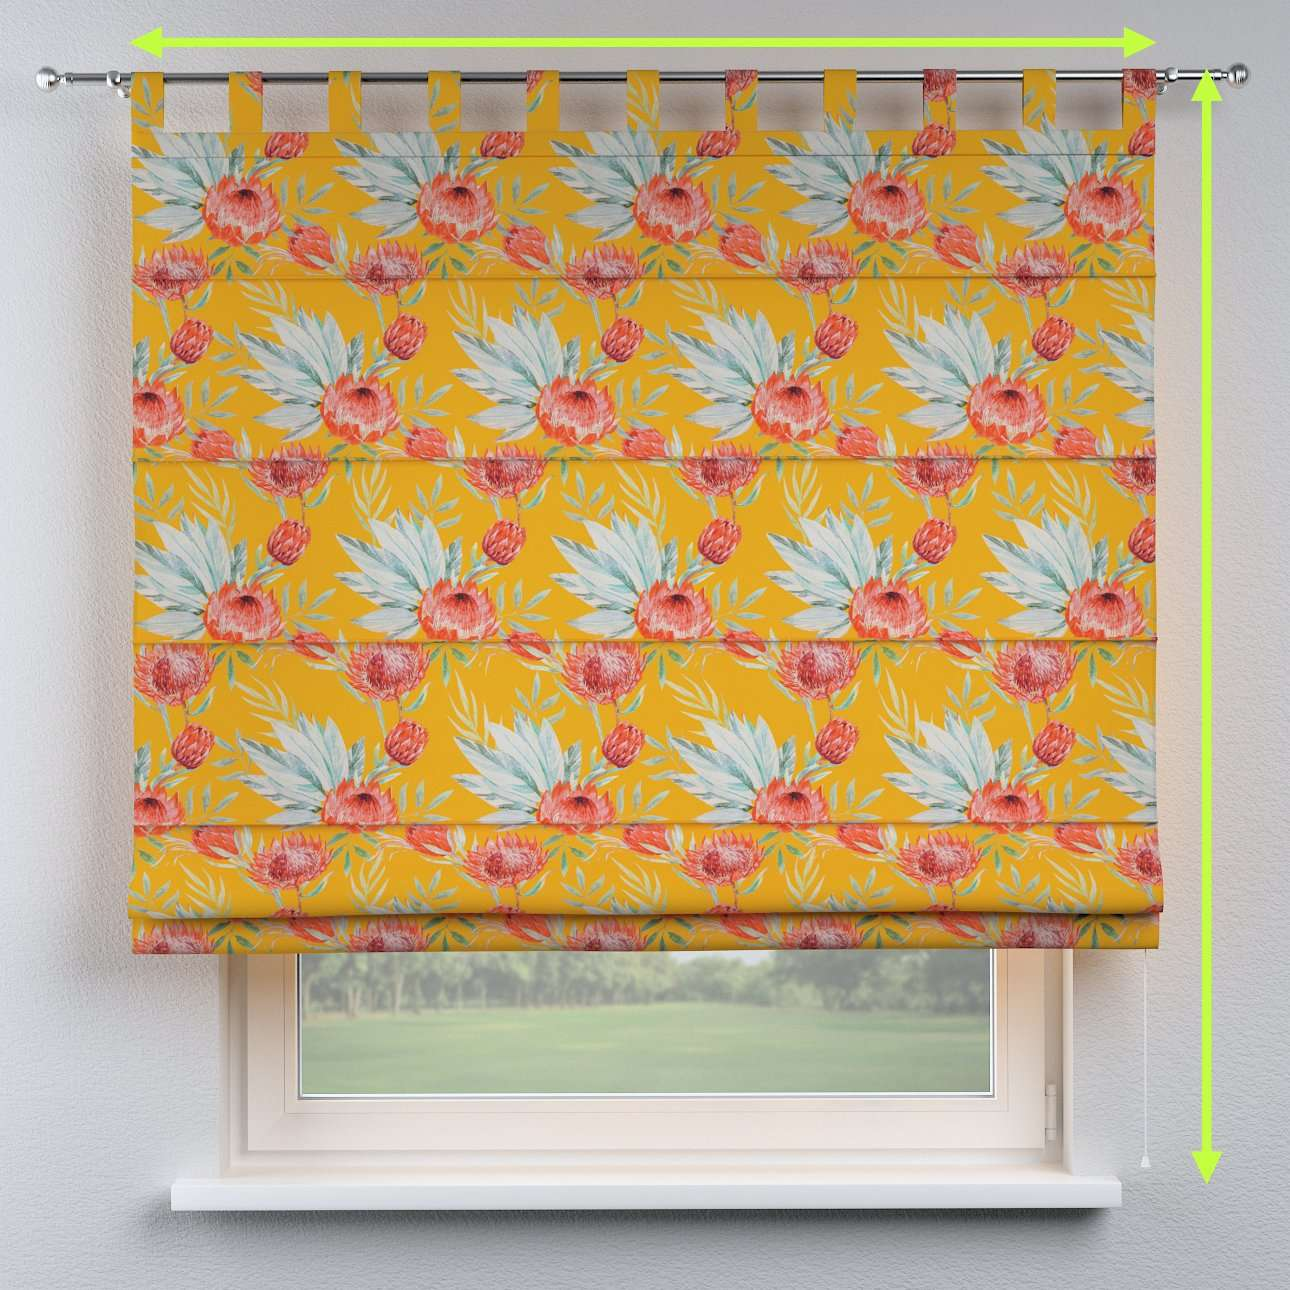 Verona tab top roman blind in collection New Art, fabric: 141-58